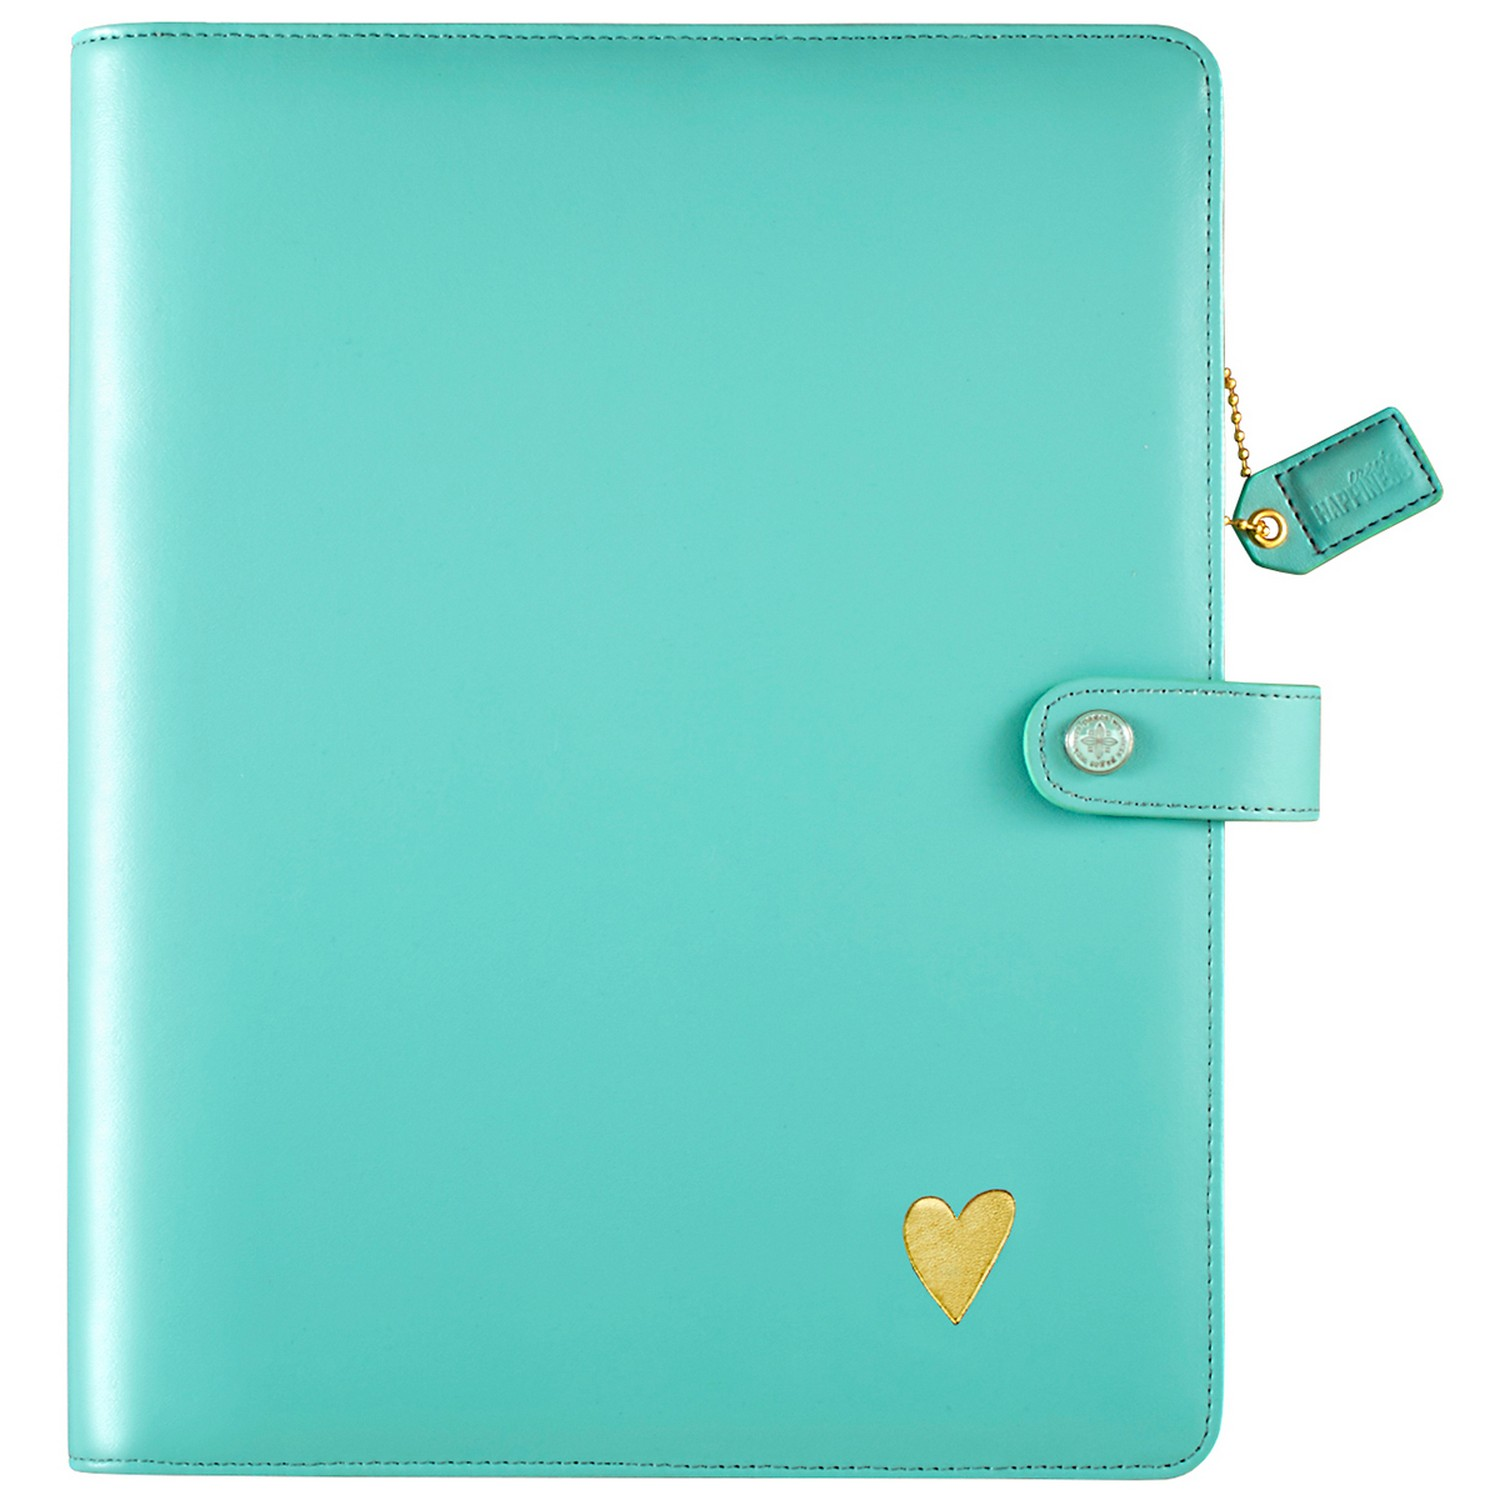 Webster's Pages 206956 Color Crush A5 Faux Leather Composition Planner-Light Teal PartNumber: 021V002936791000P KsnValue: 021V002936791000 MfgPartNumber: 206956